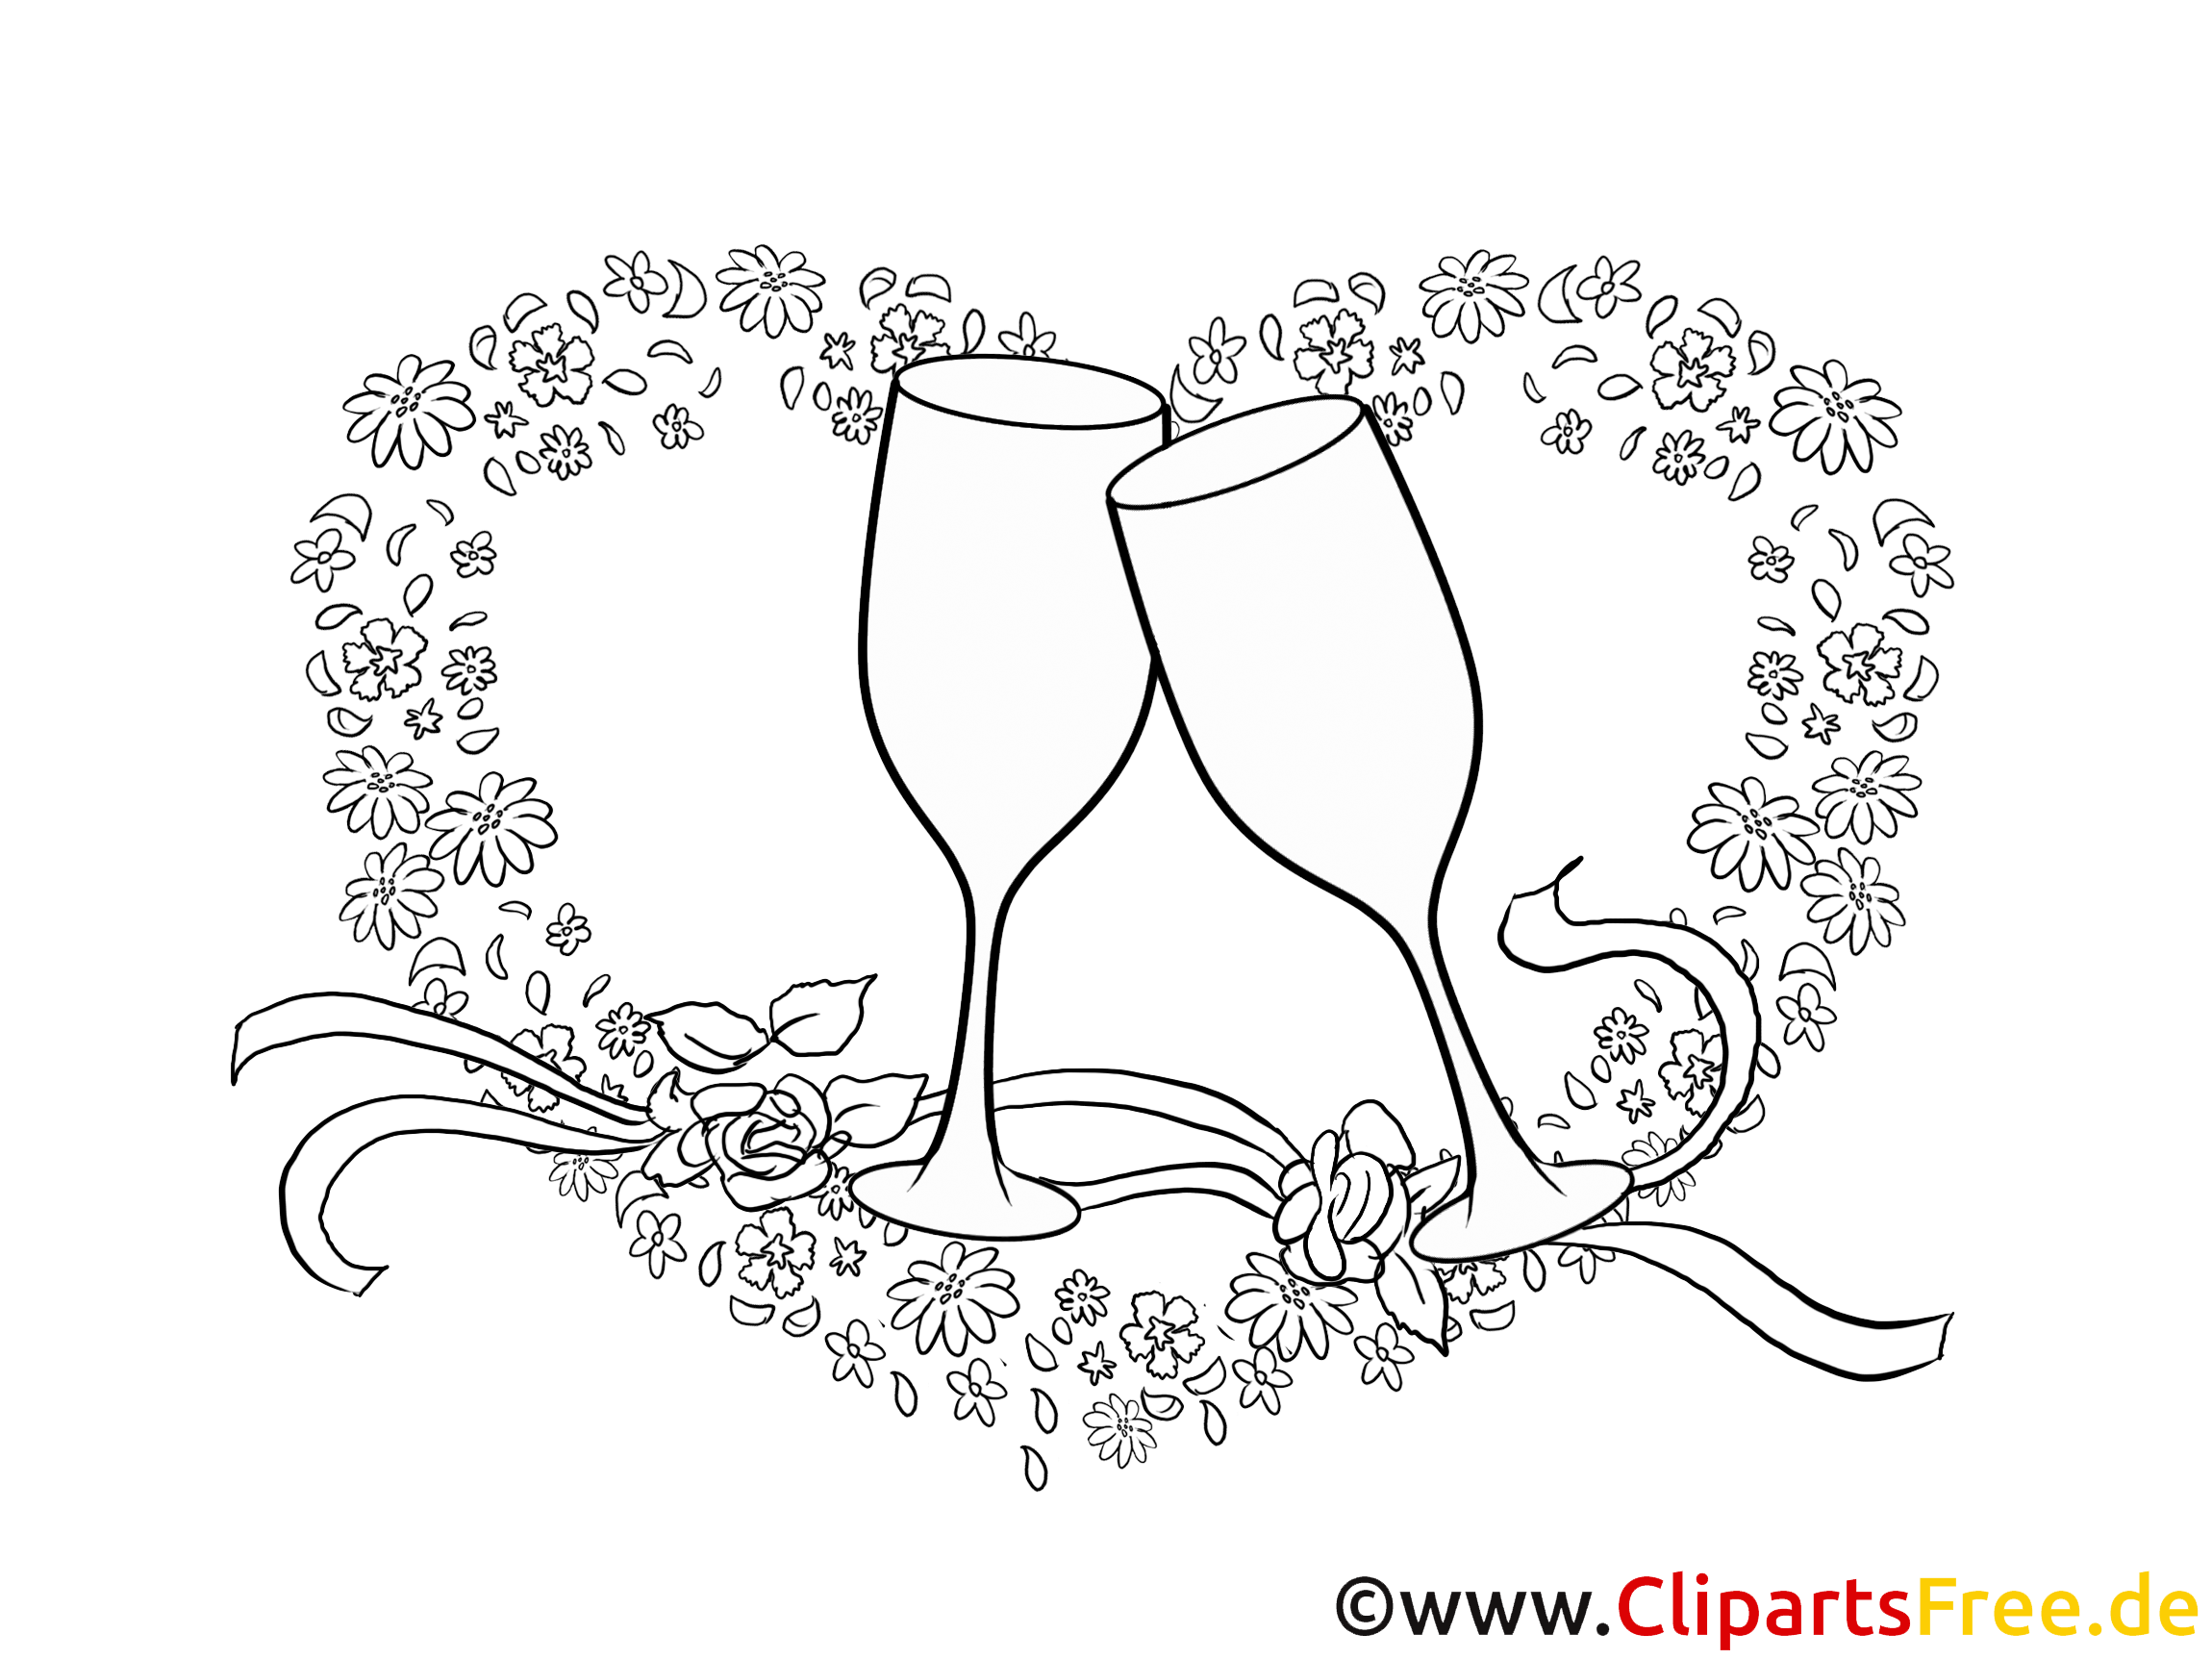 coeur clip art imprimer mariage dessin mariage. Black Bedroom Furniture Sets. Home Design Ideas